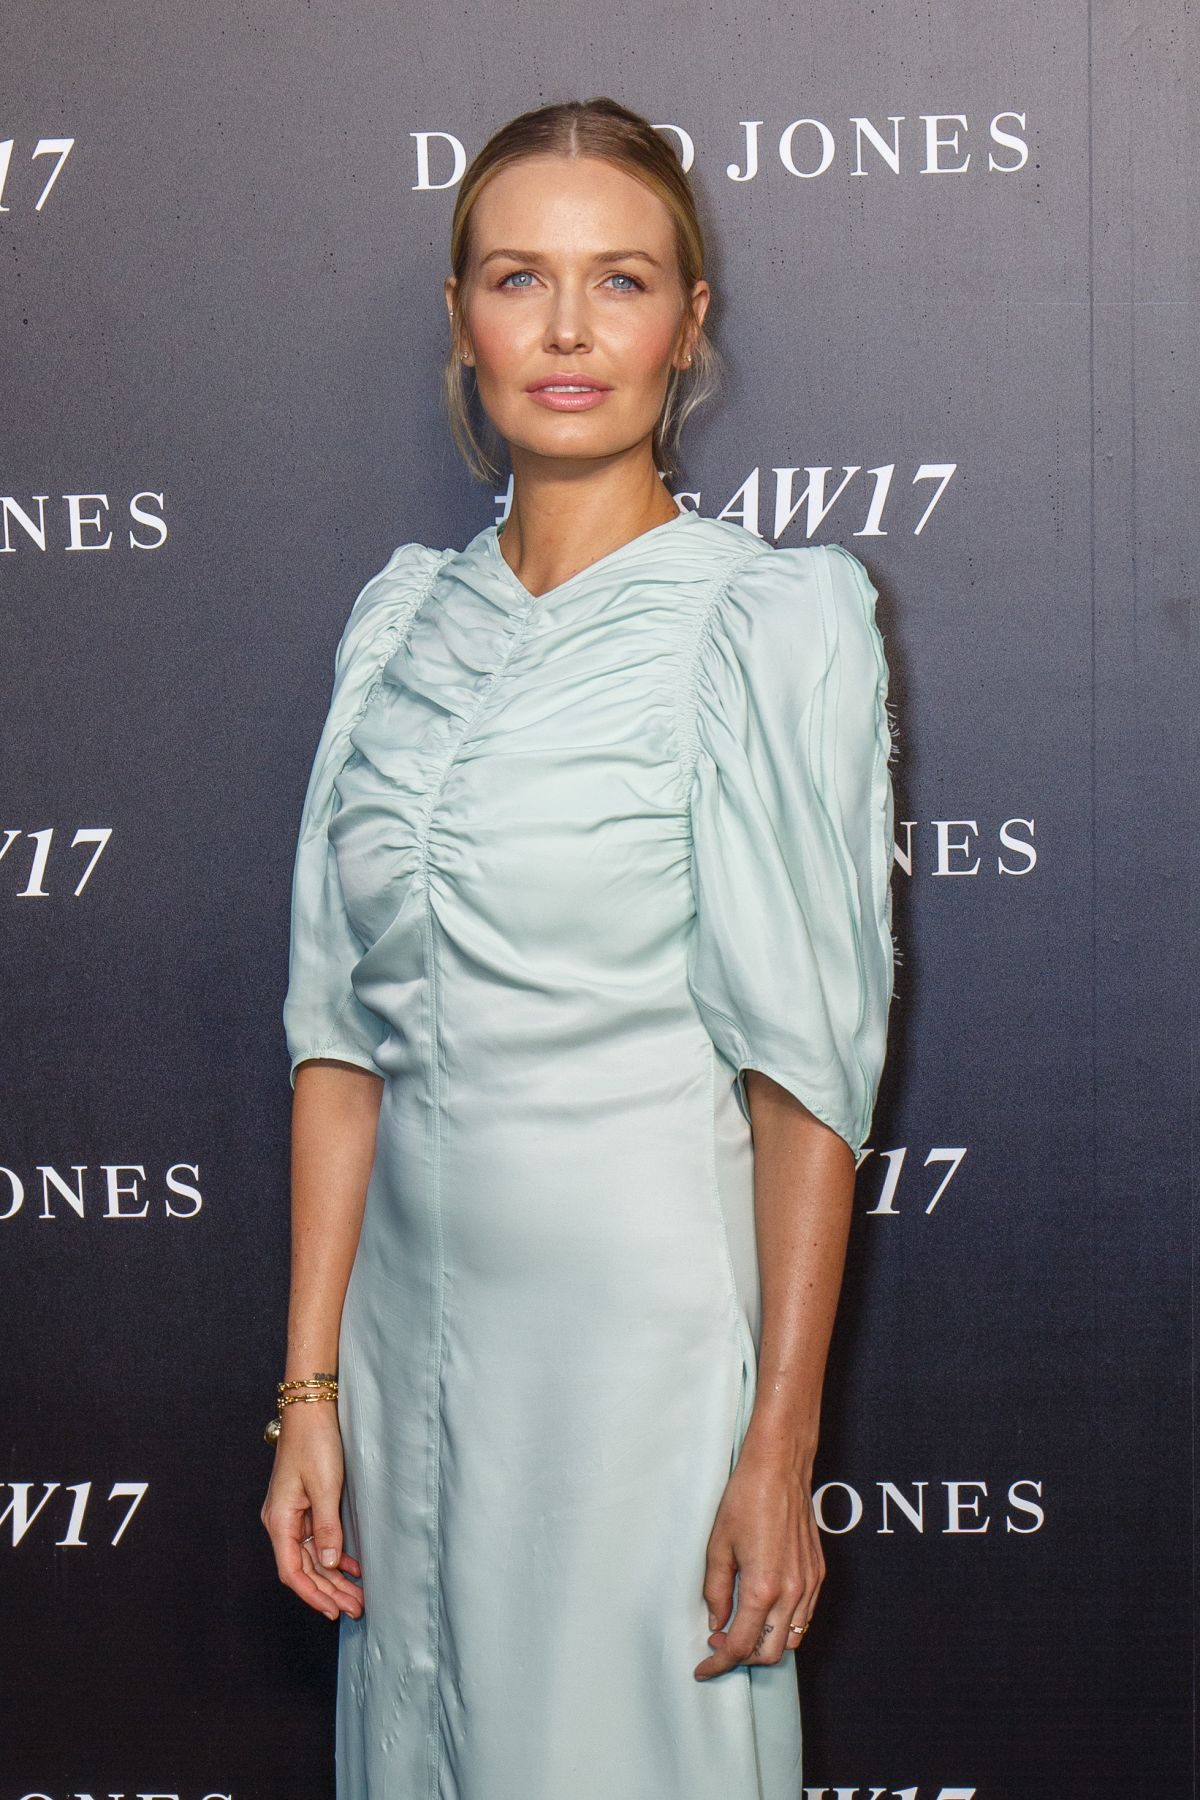 Lara bingle at david jones autumnwinter 2019 collections launch in sydney nudes (75 photo), Topless Celebrites image